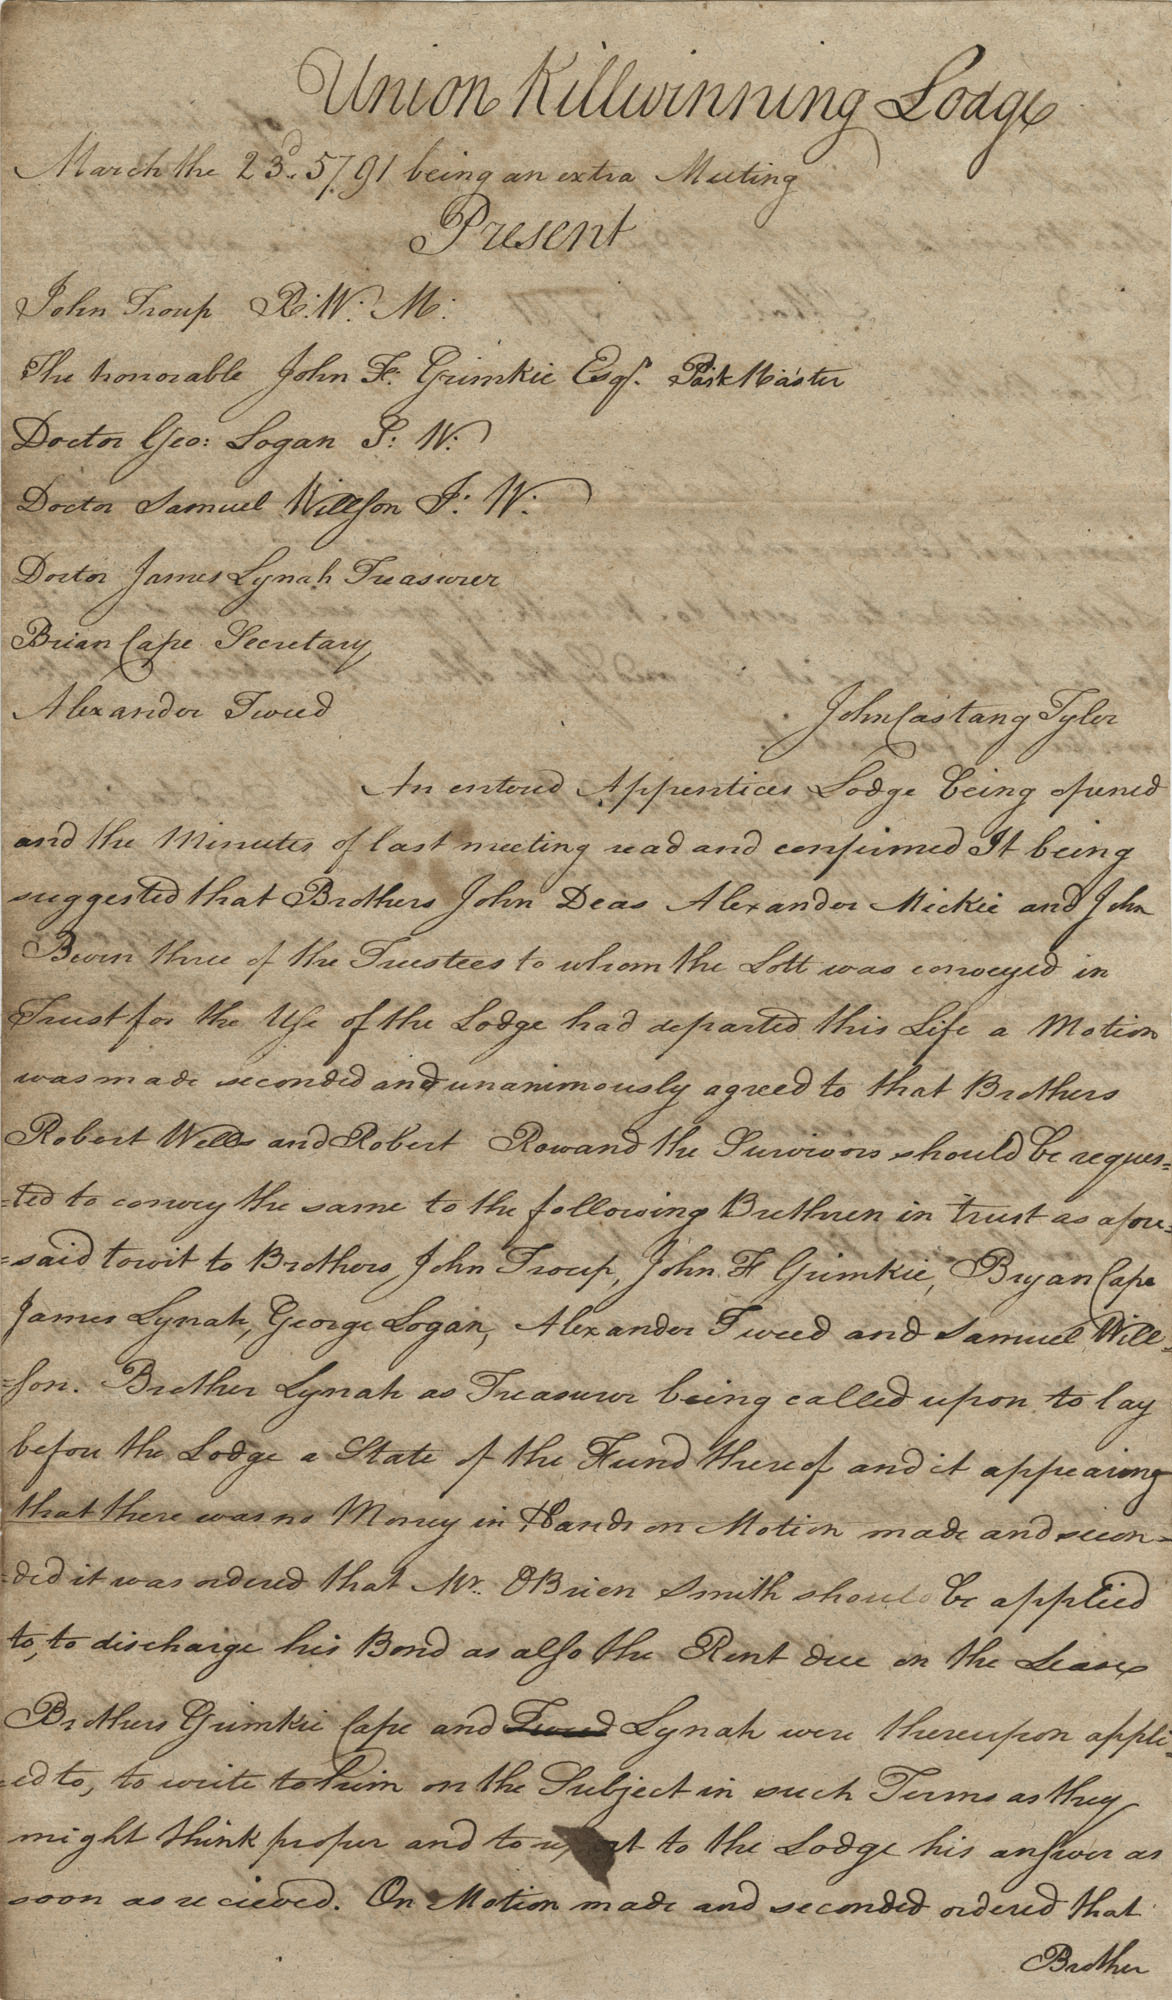 Letter to John F. Grimke from John Troup with attached minutes from a Freemason's meeting, March 24, 1791